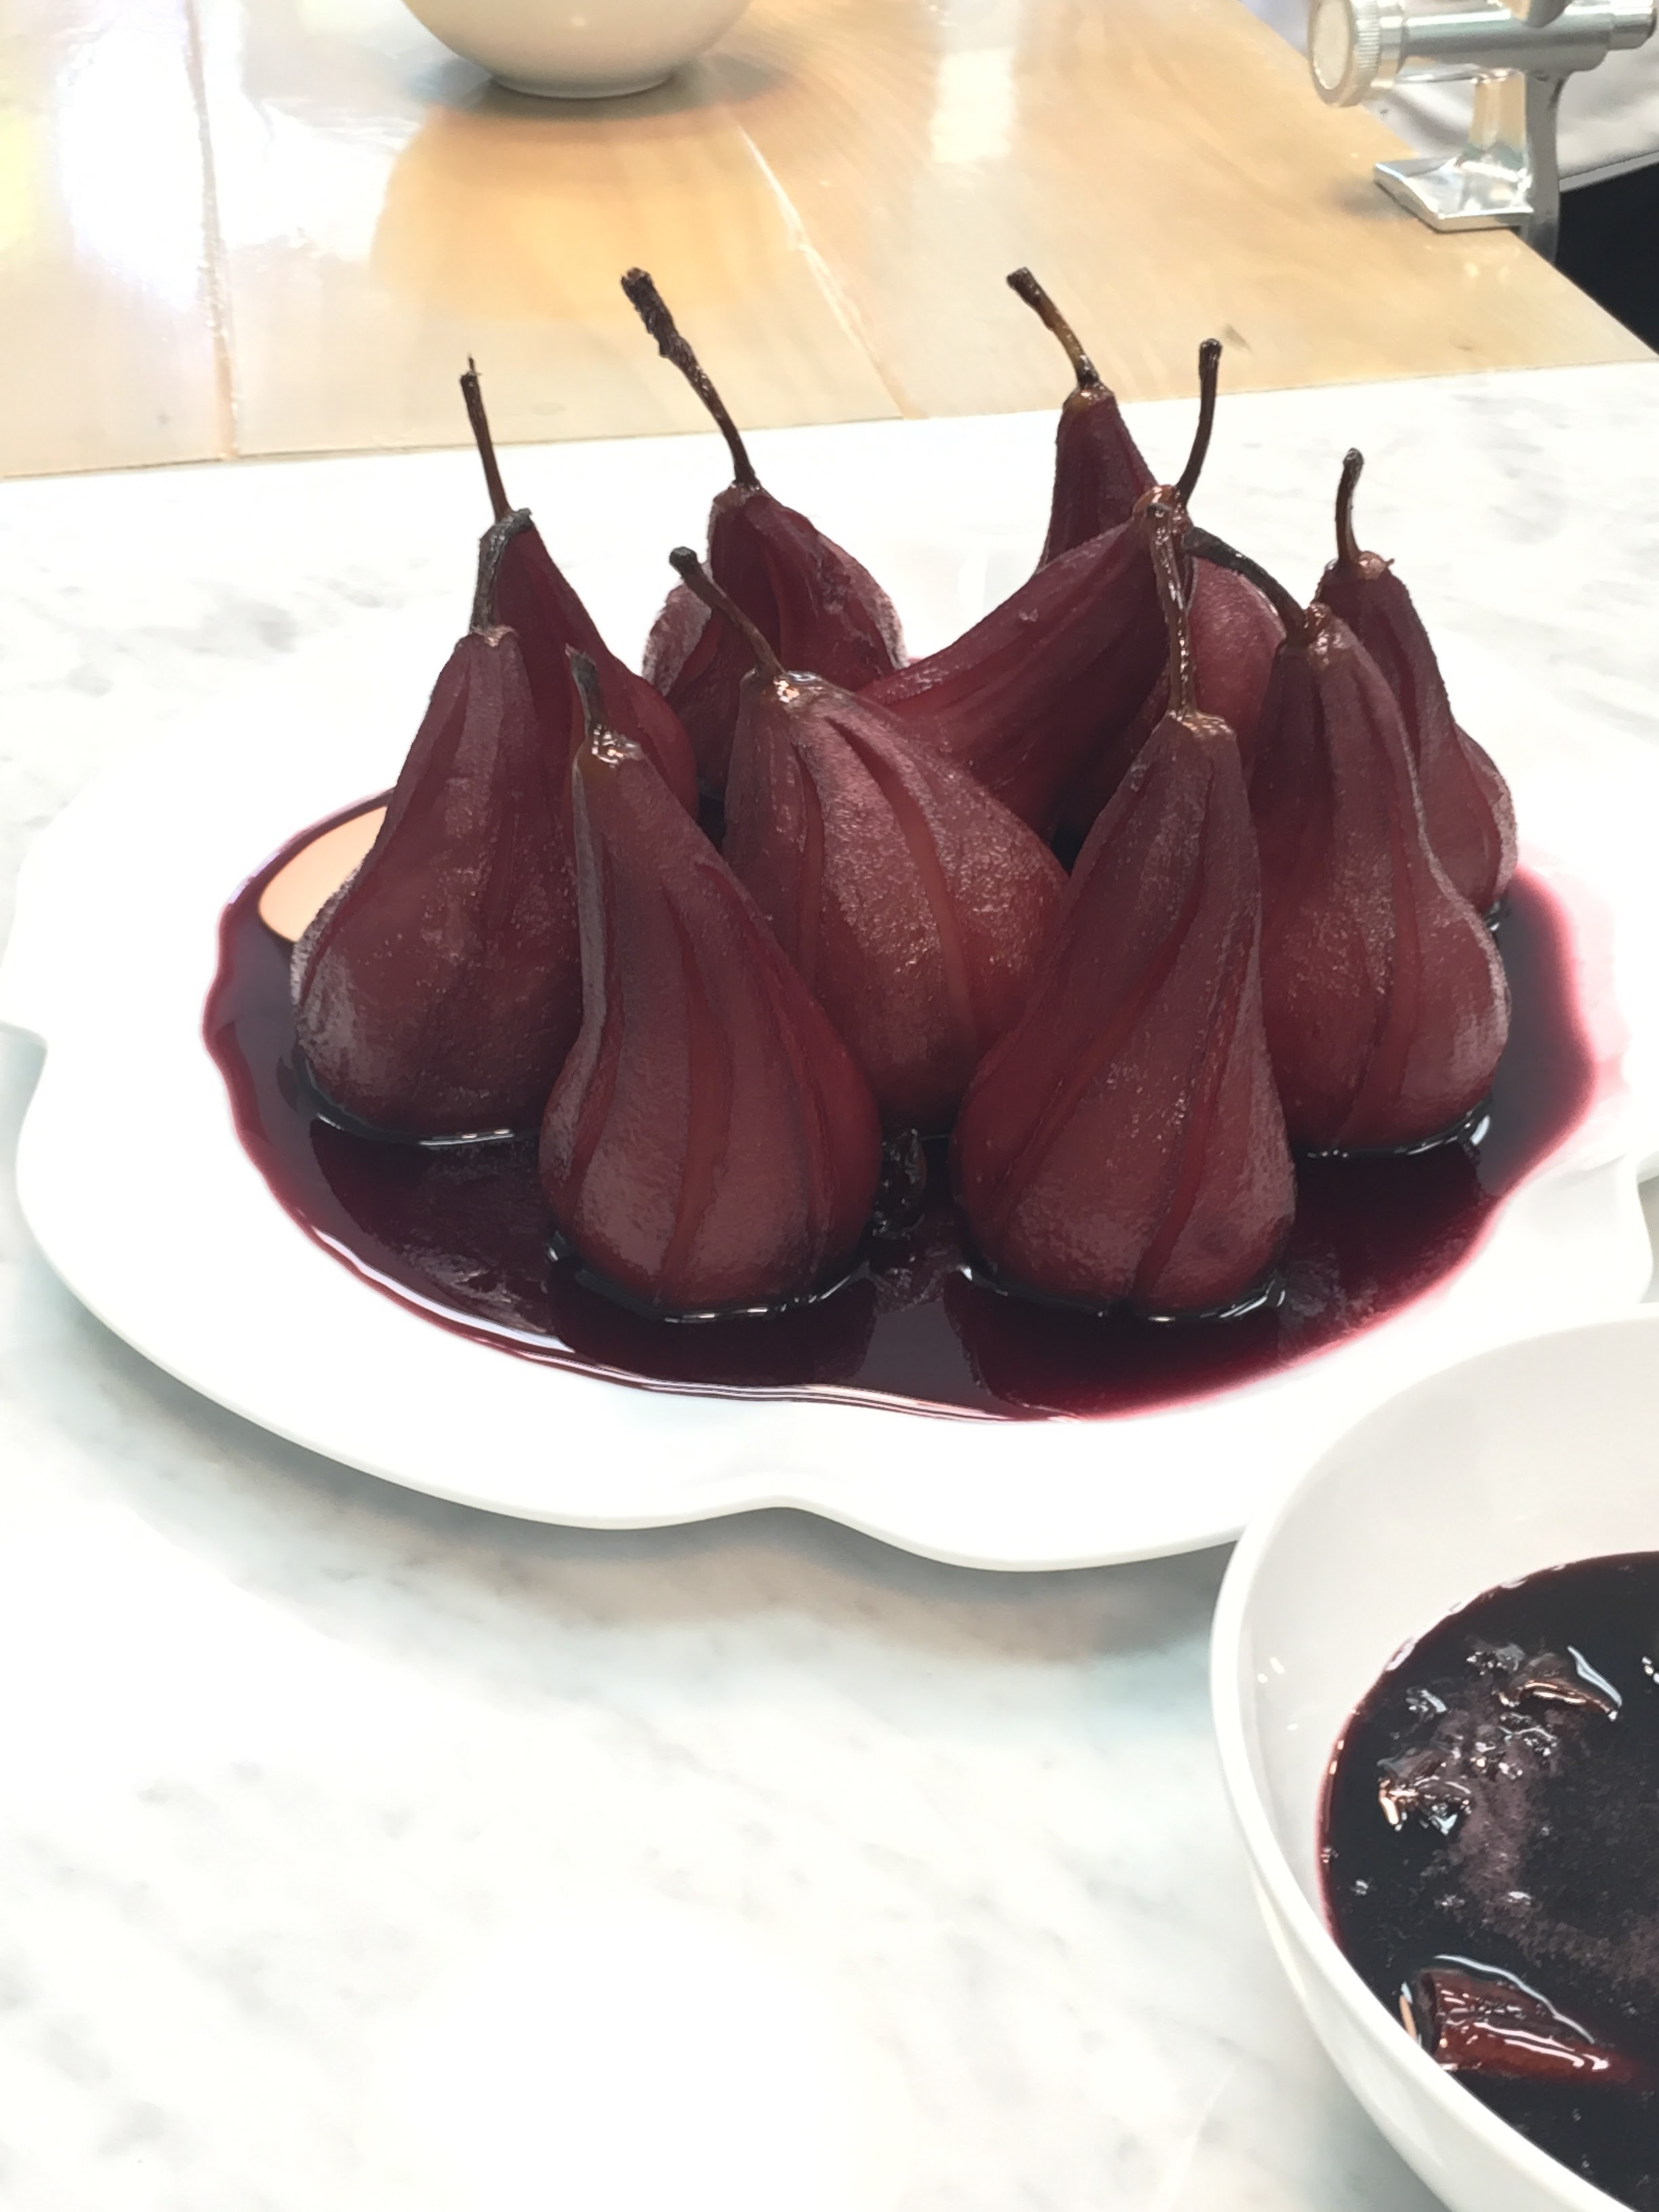 Cabernet poached pears.